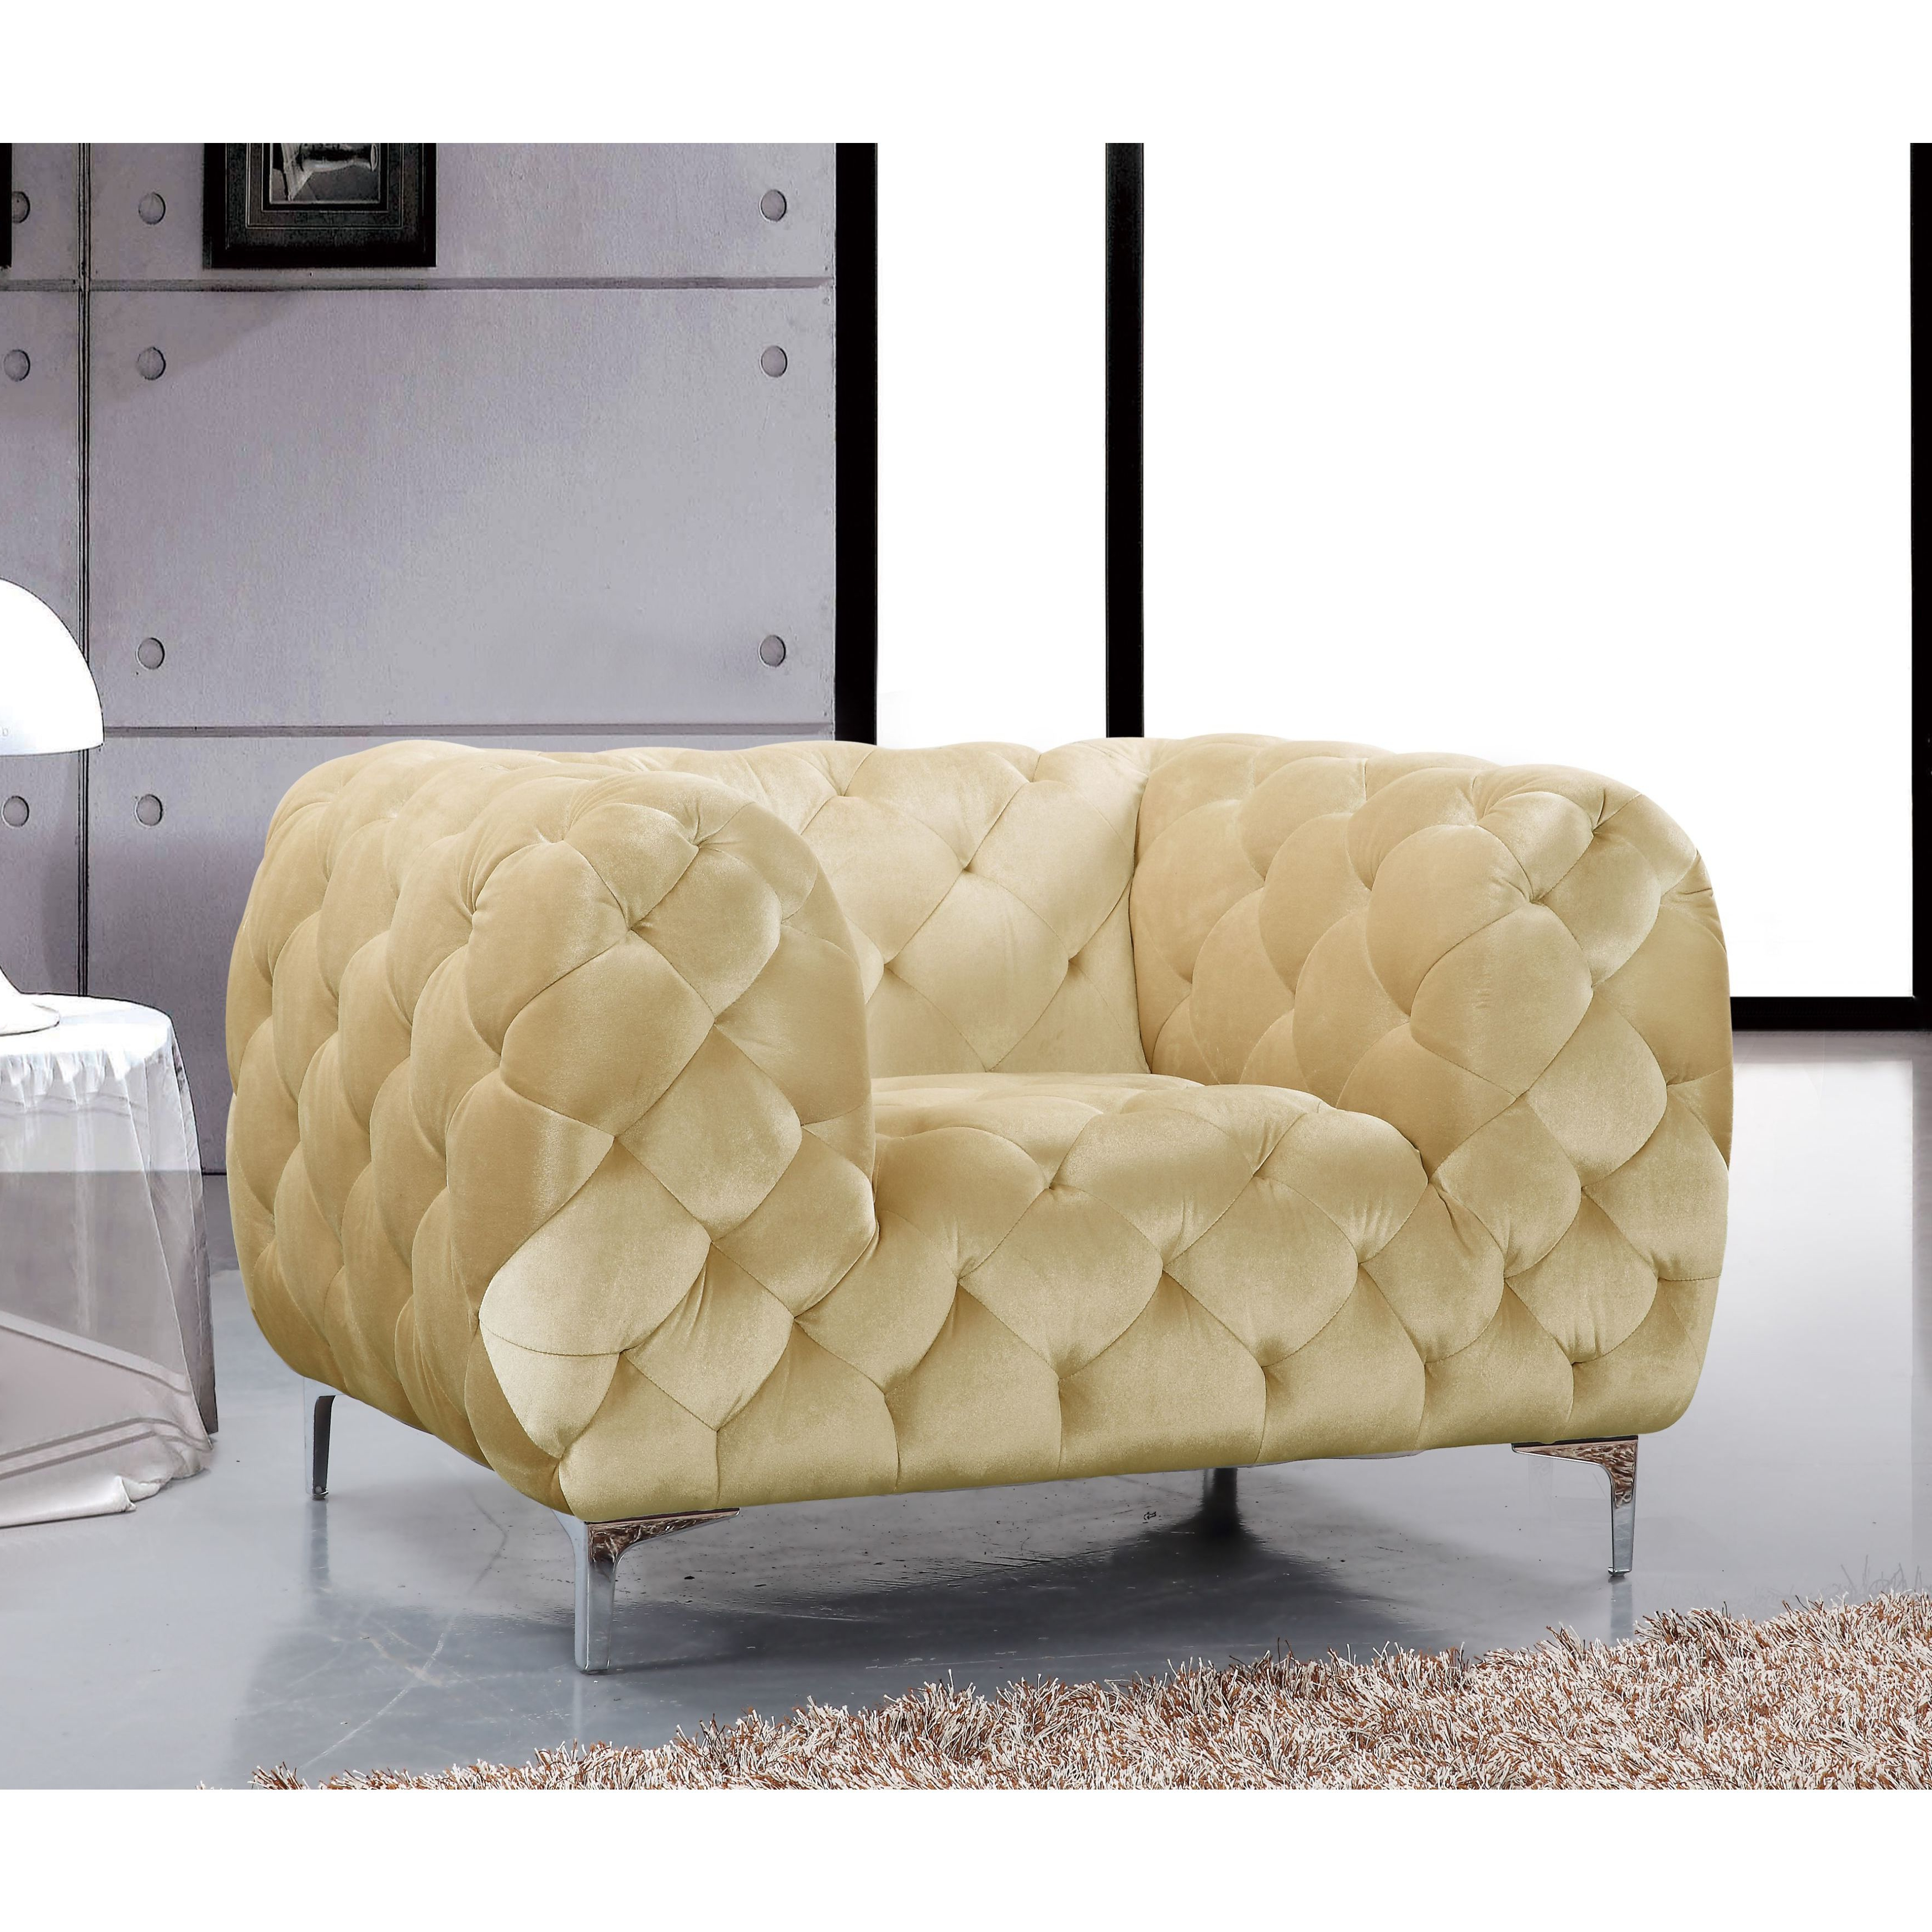 Shop Meridian Mercer Beige Velvet Tufted Chair – Free Shipping Today Inside Popular Mercer Foam Swivel Chairs (View 19 of 20)